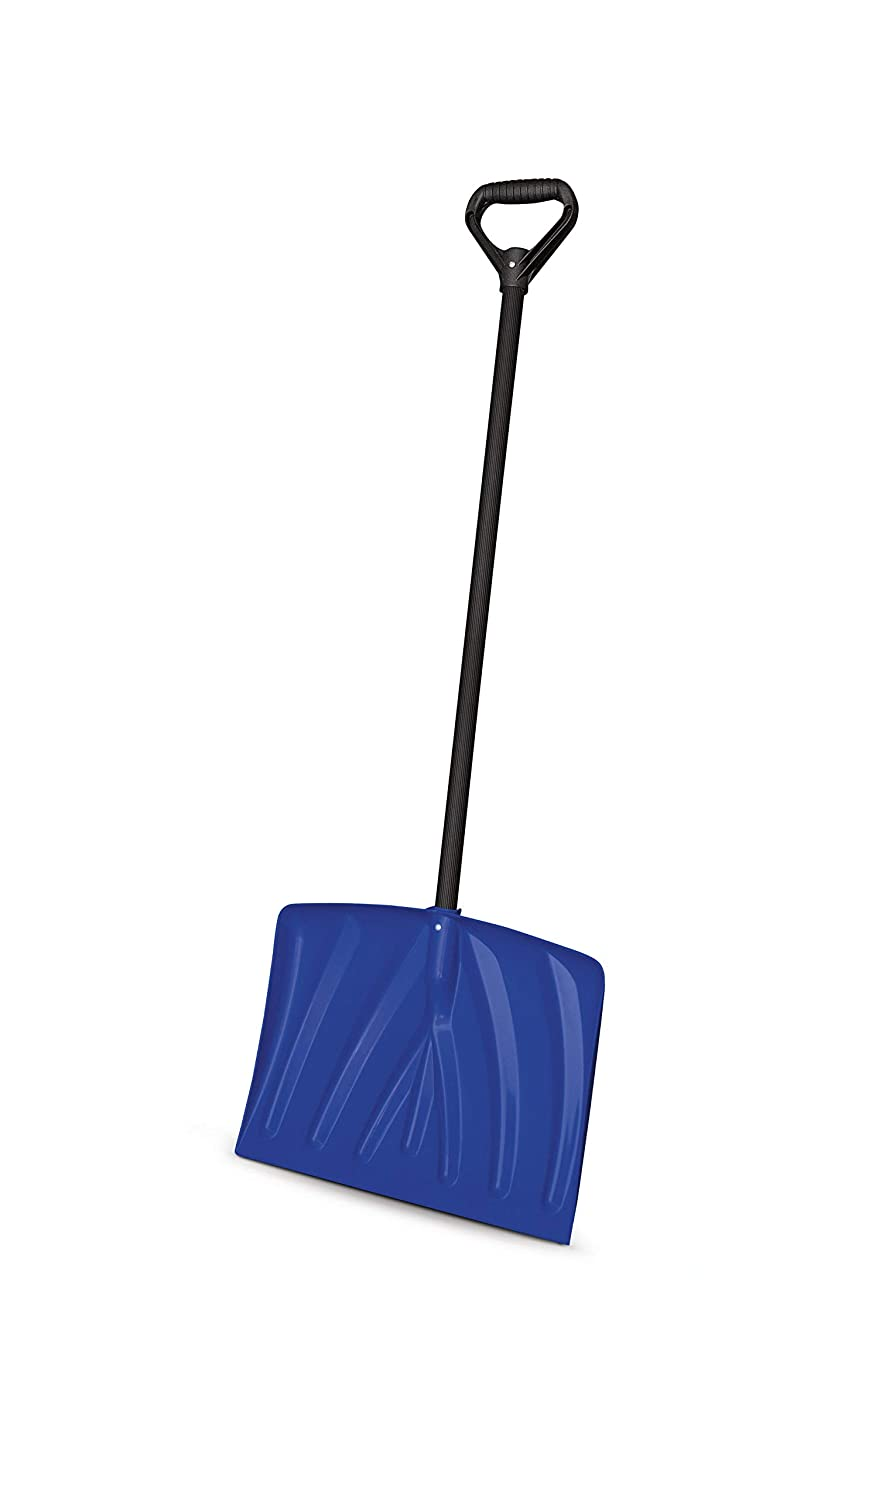 Top 10 Best Snow Shovel (2020 Reviews & Buying Guide) 5